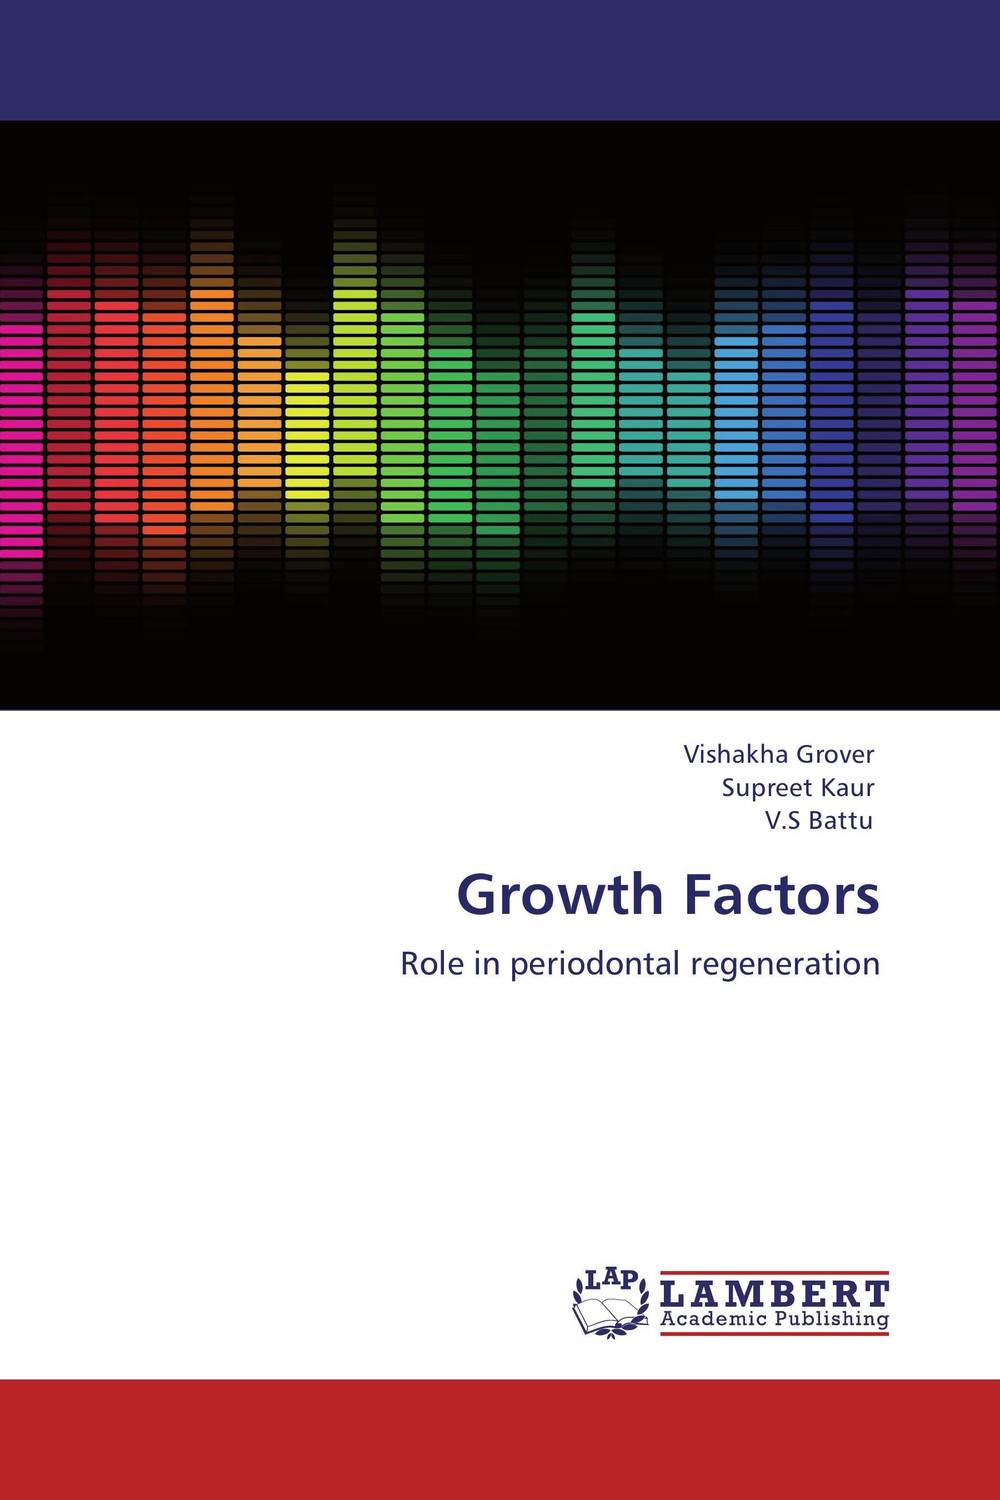 Growth Factors growth factors